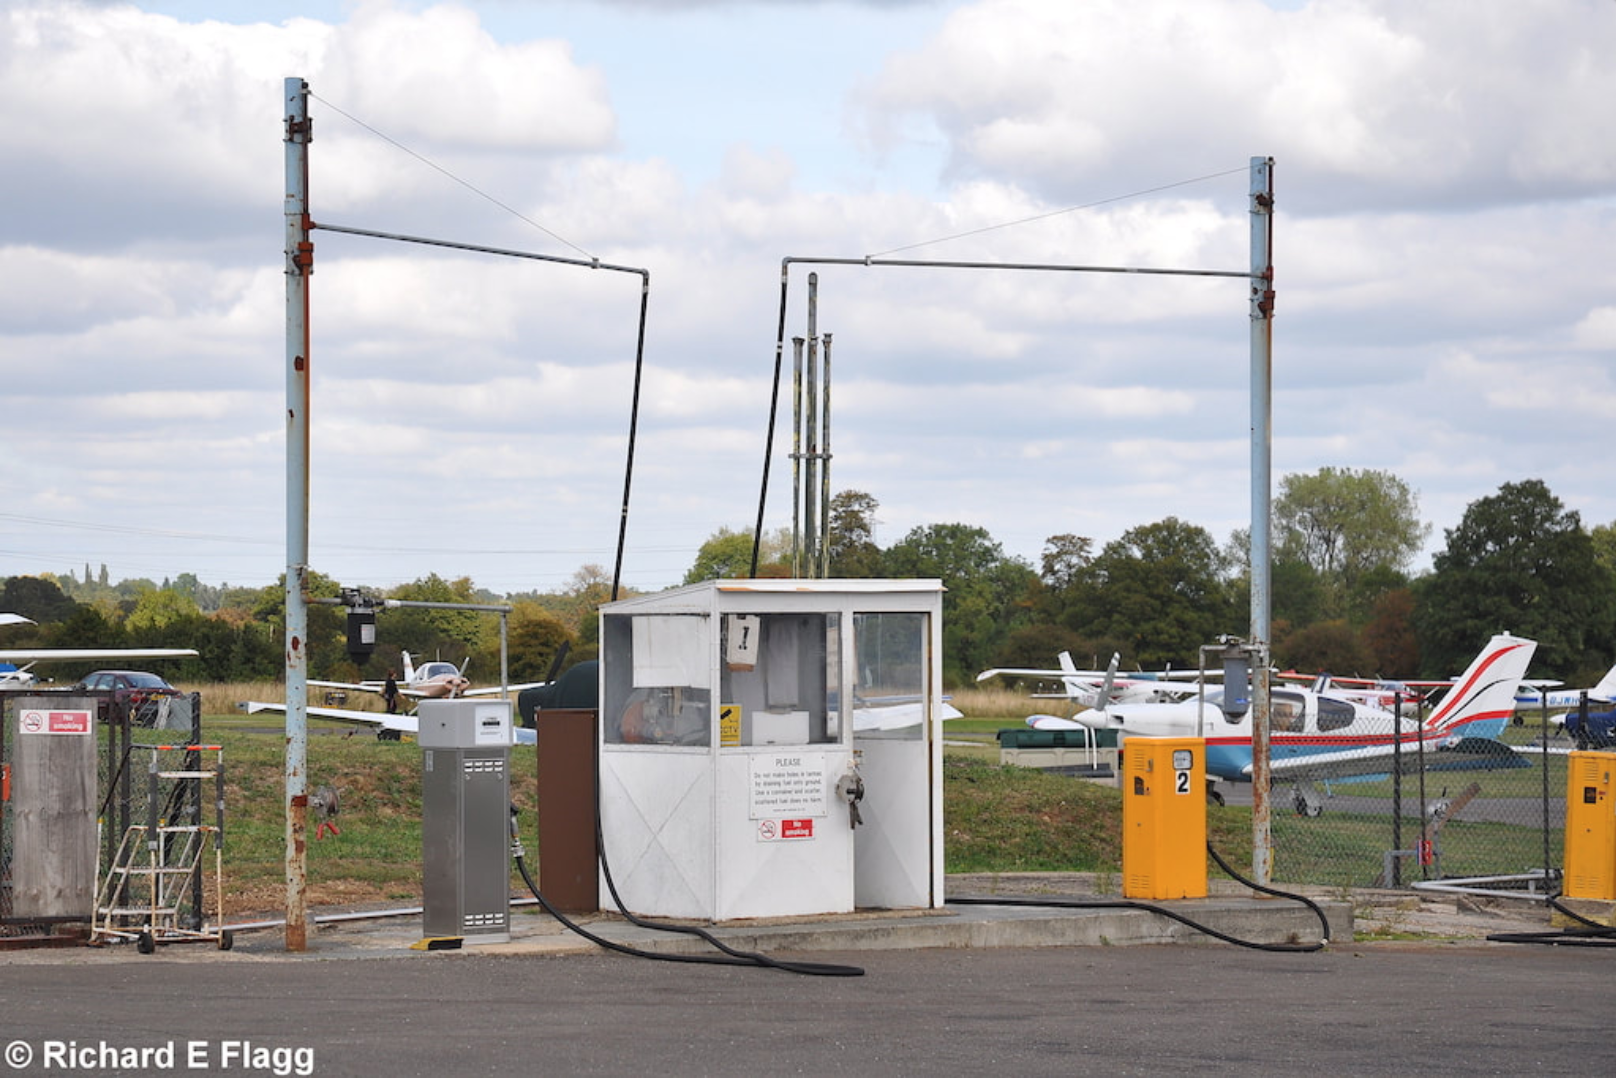 007Aviation Fuel Pumps - 11 September 2009.png